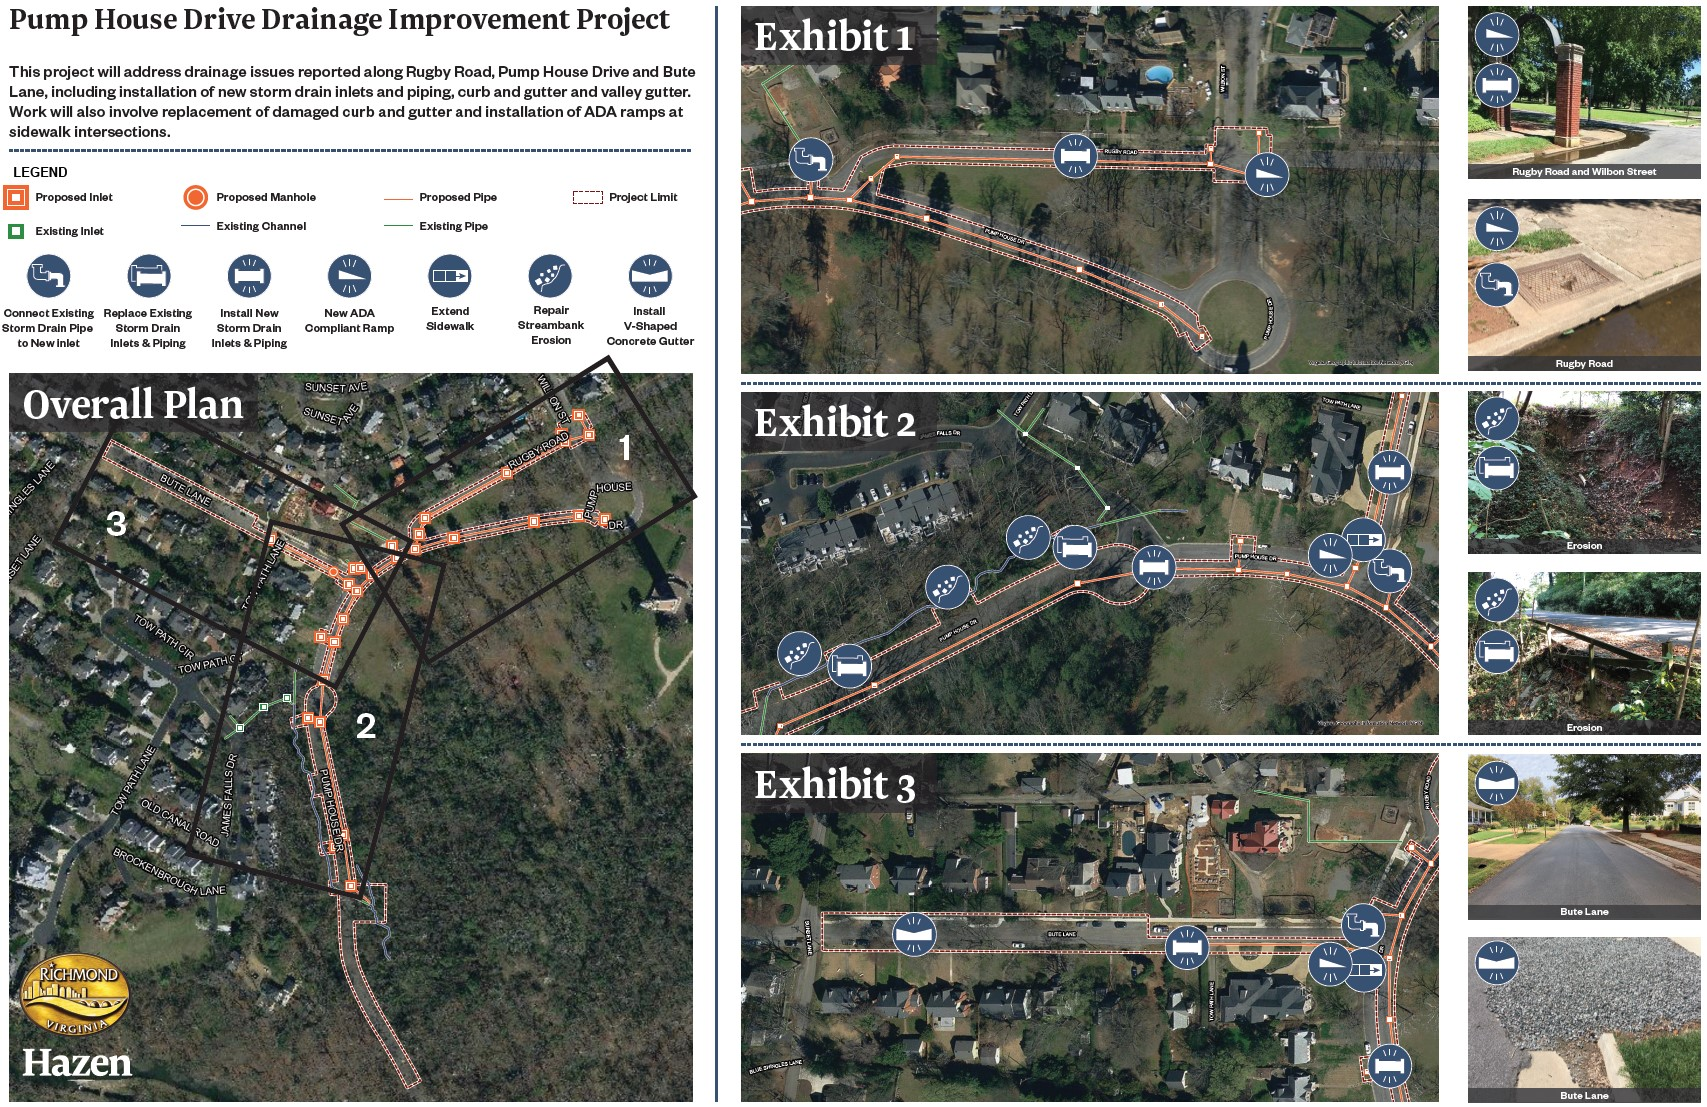 Poster Board for Pump House Drive Drainage Improvement Project showing improvements to be made.